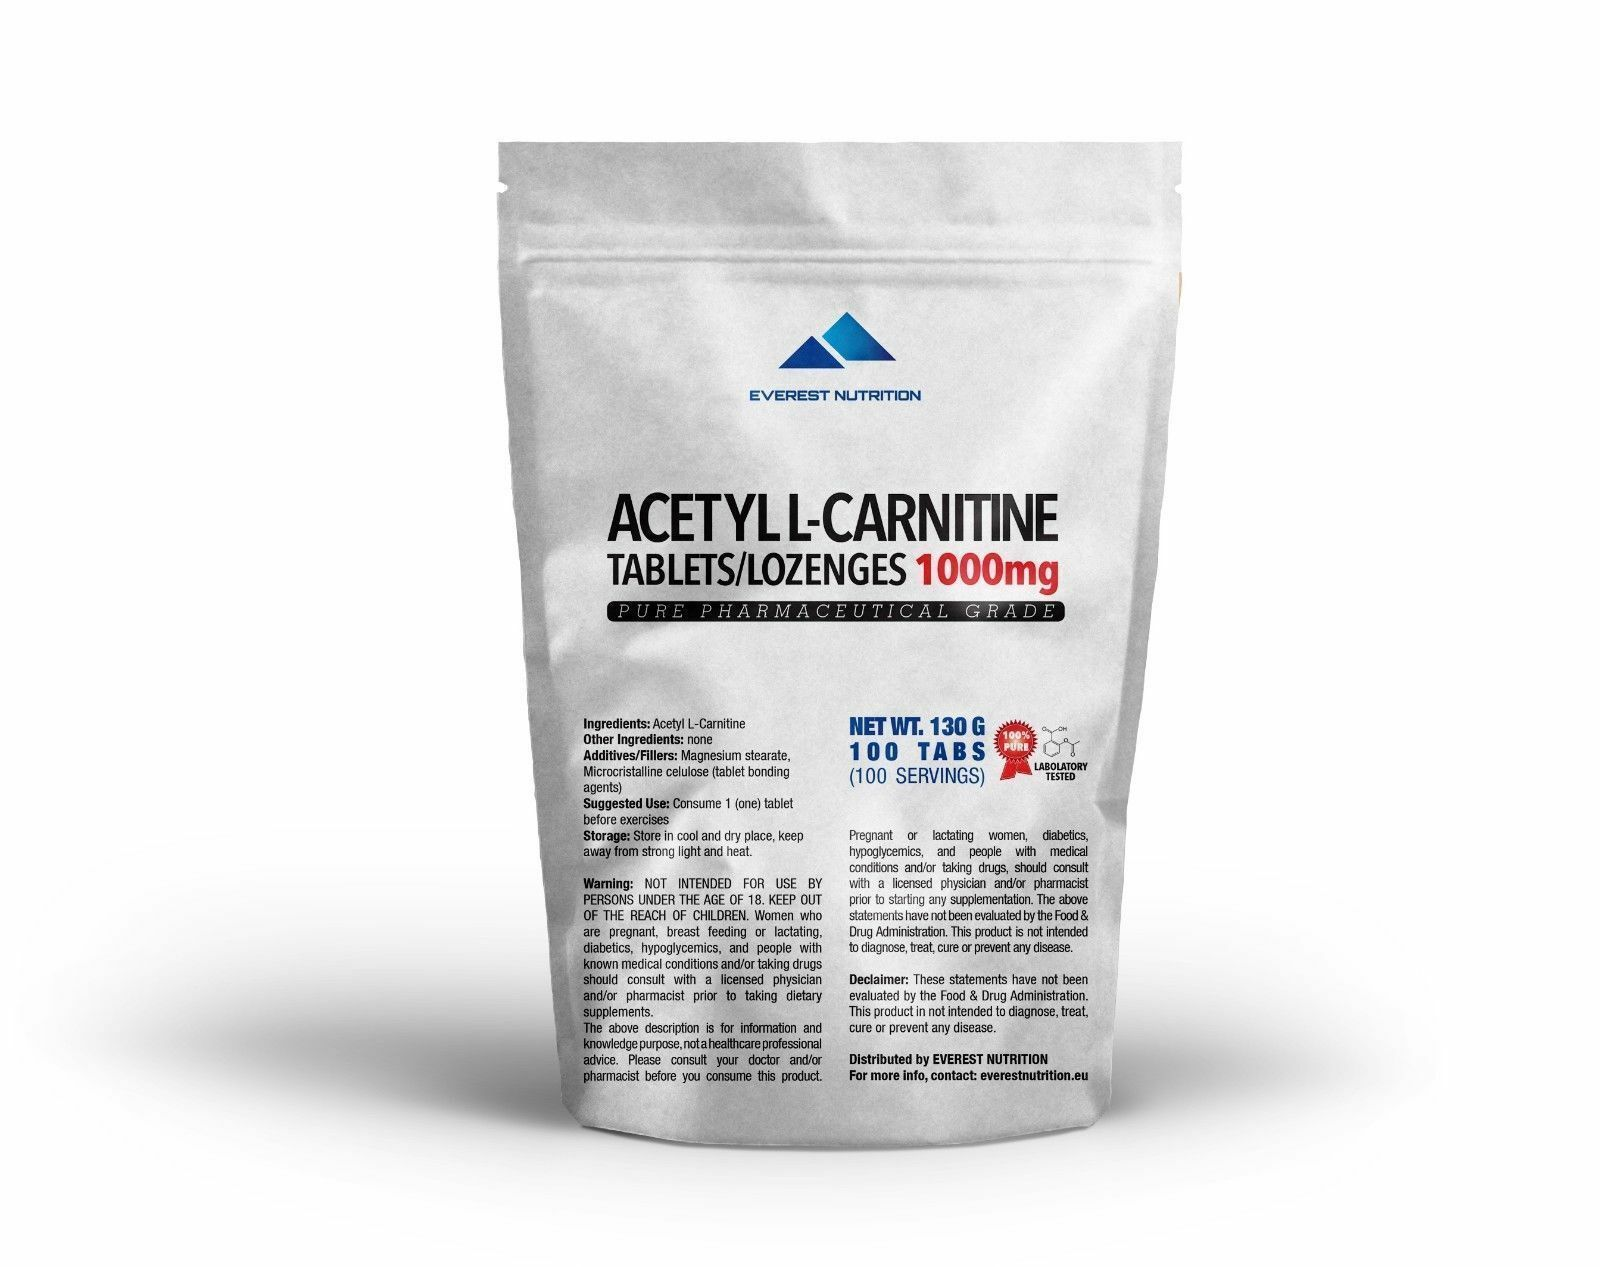 ACETYL L-CARNITINE, ALCAR, ALC 1000mg TABLETS, LOZENGES, PHARMACEUTICAL QUALITY